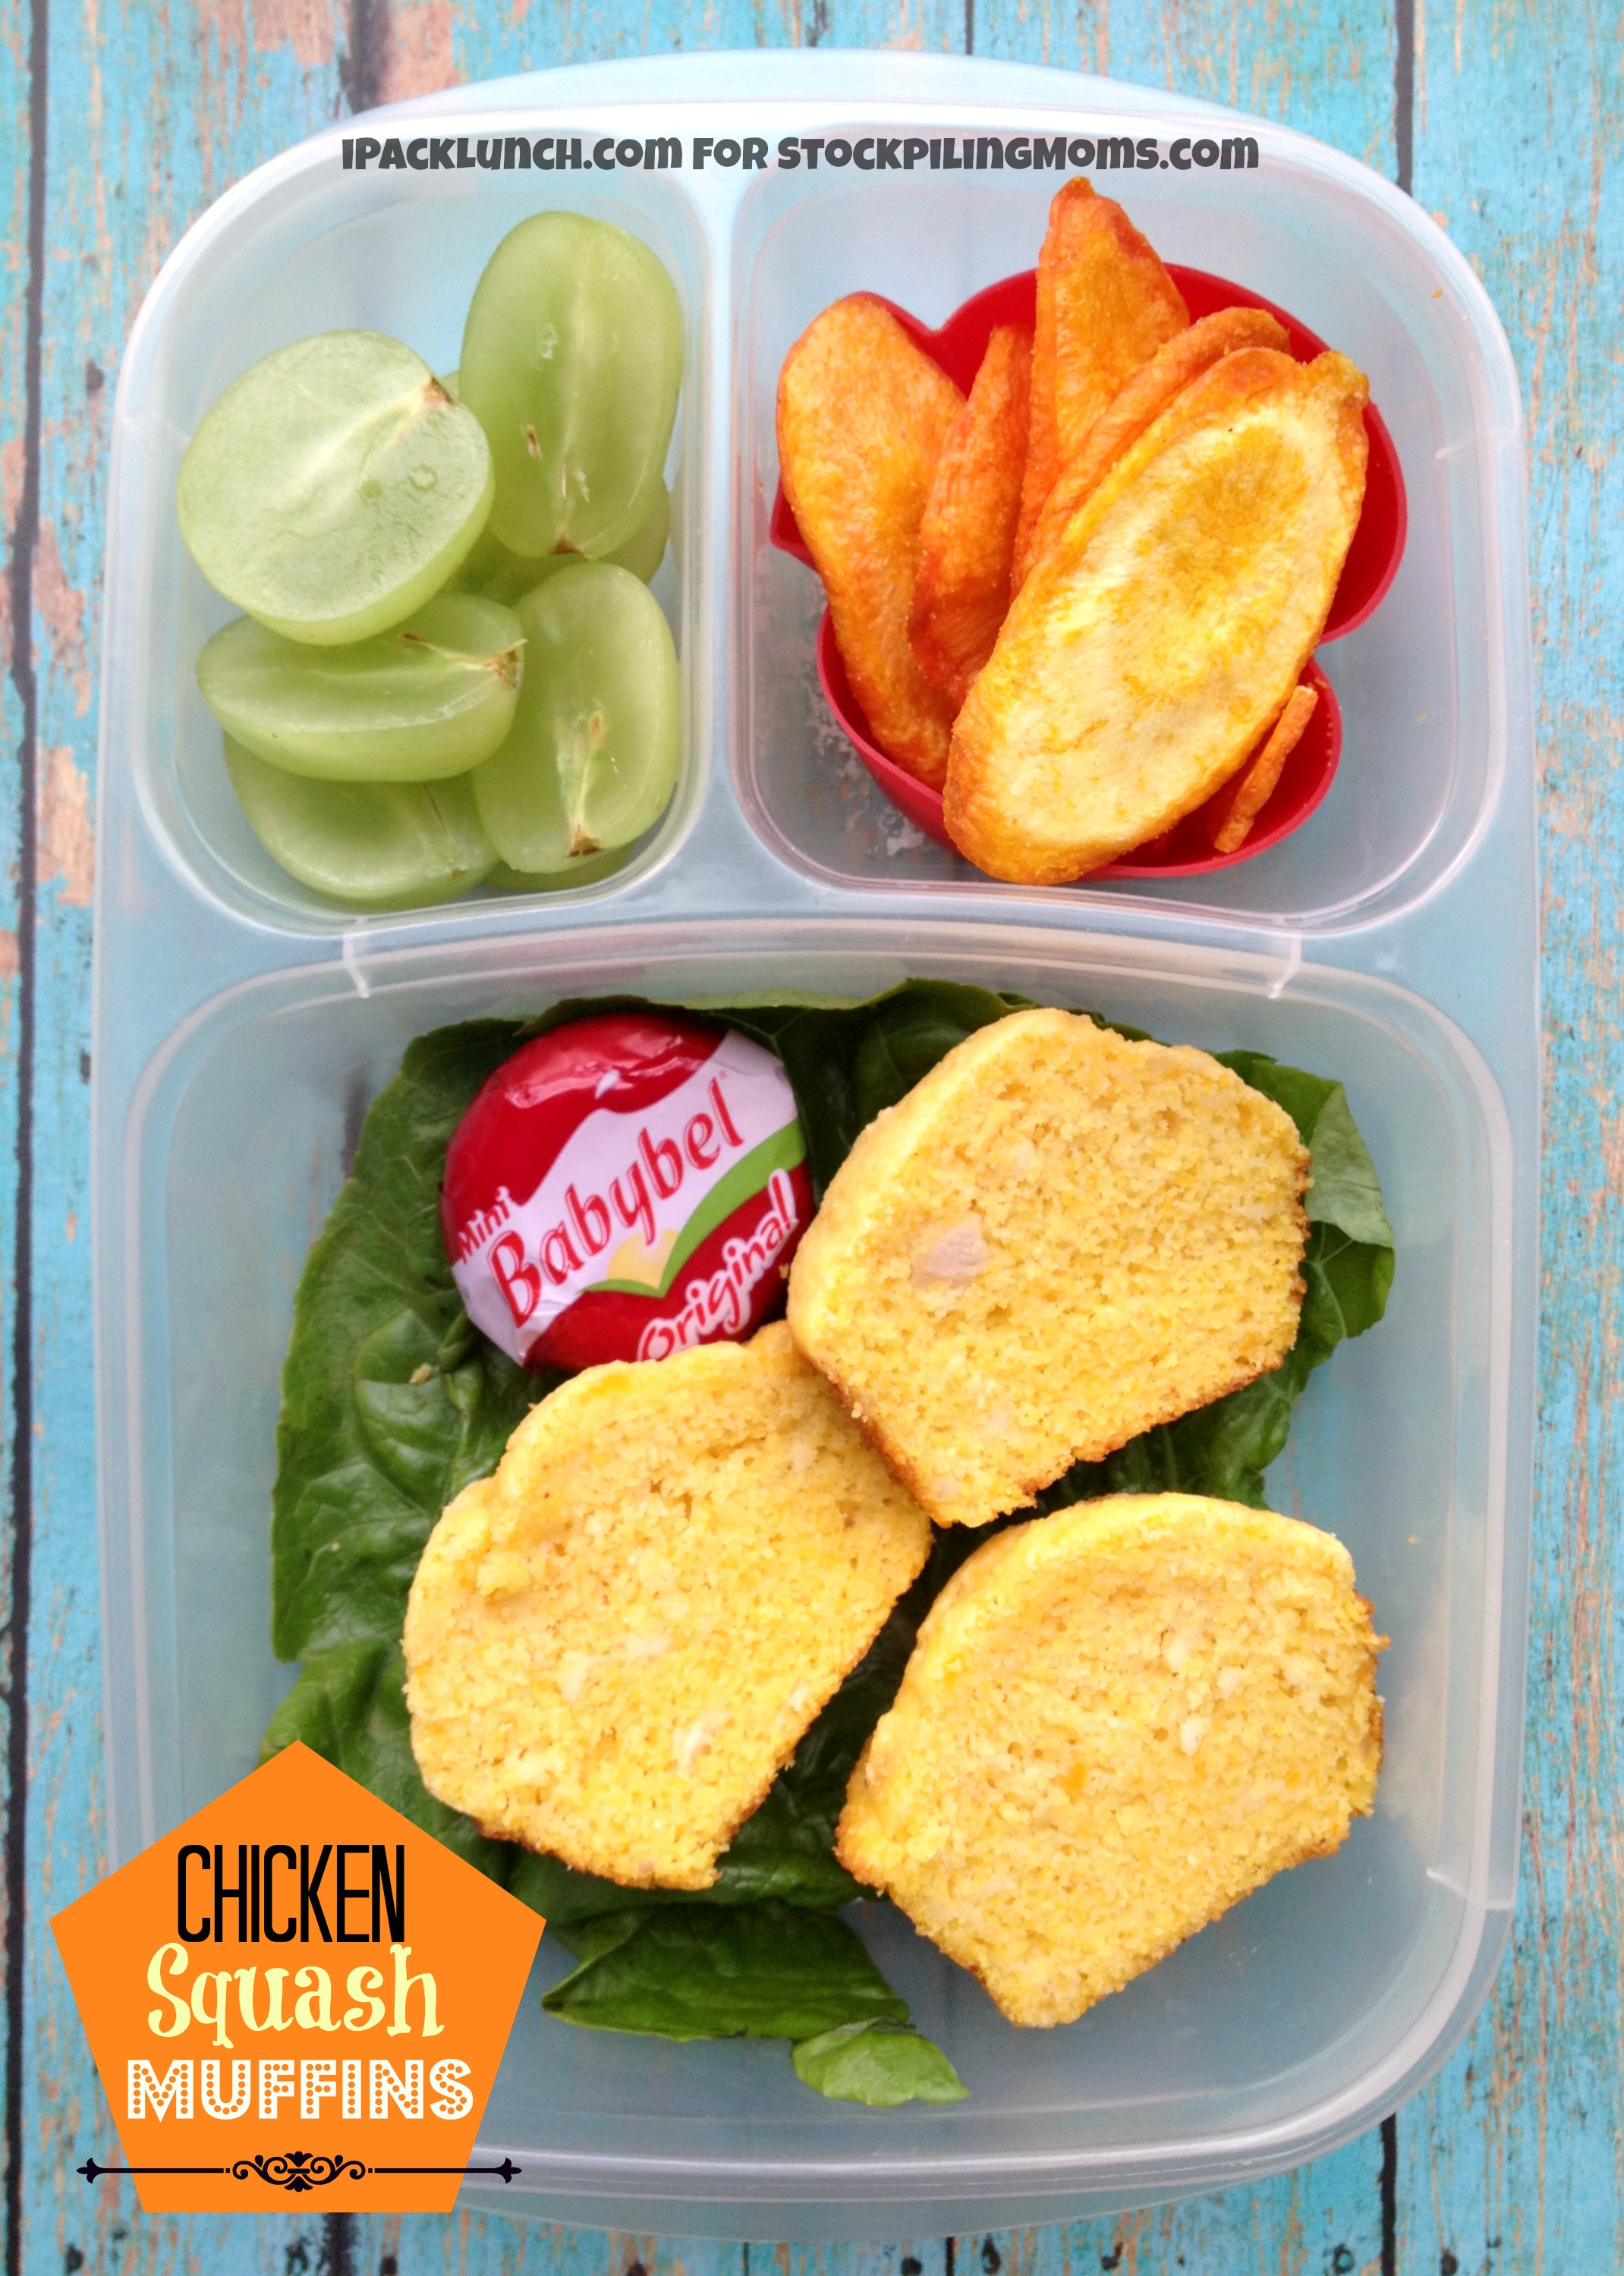 3 for 3 Lunchbox Challenge - Lunch Ideas including Rotisserie Chicken, Pureed Butternut Squash, Green Grapes